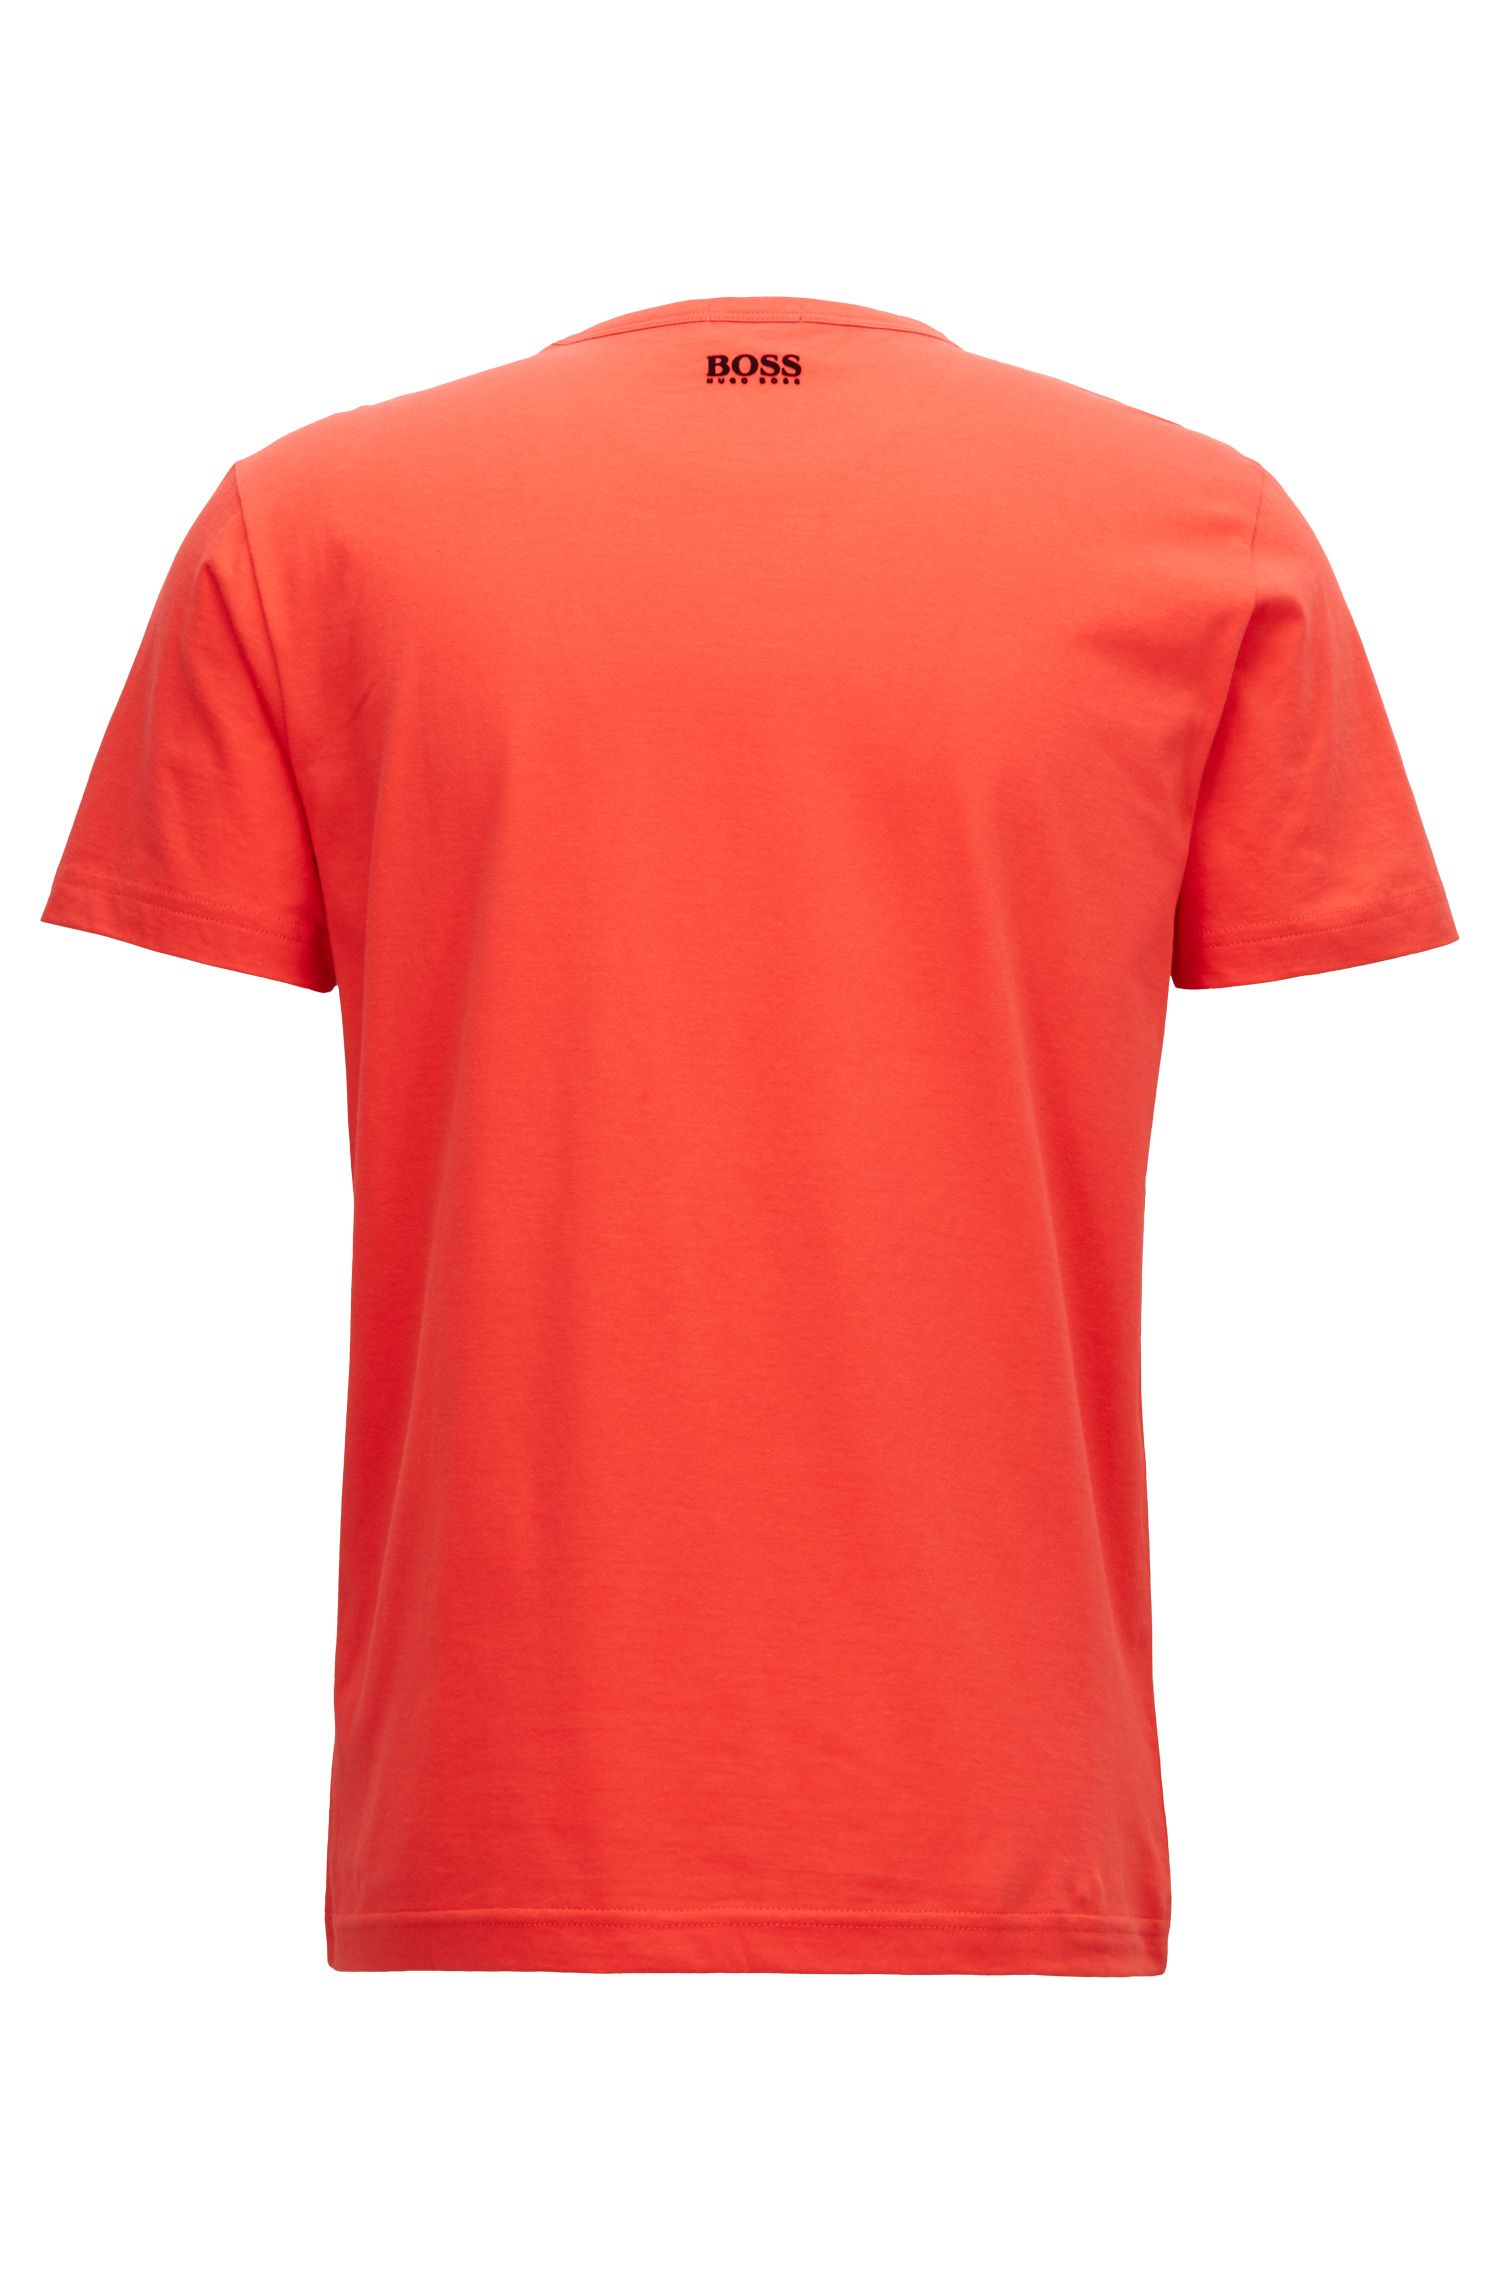 Crew-neck T-shirt in cotton with flock-print logo, Red